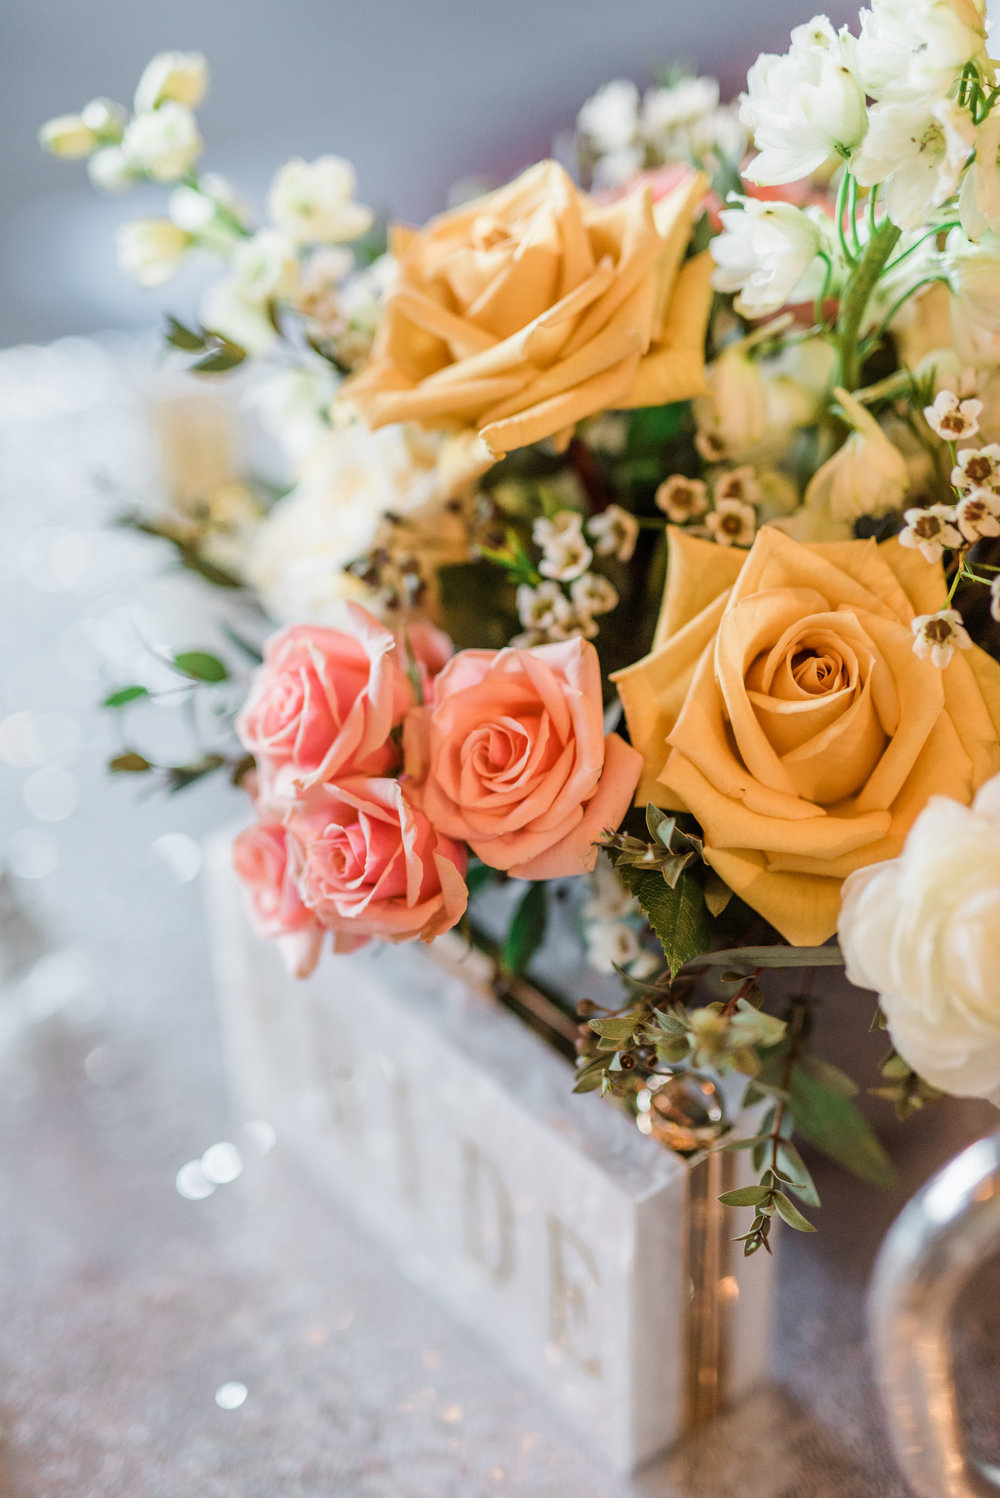 Boho Sedona Wedding - Centerpiece with gold and white flowers